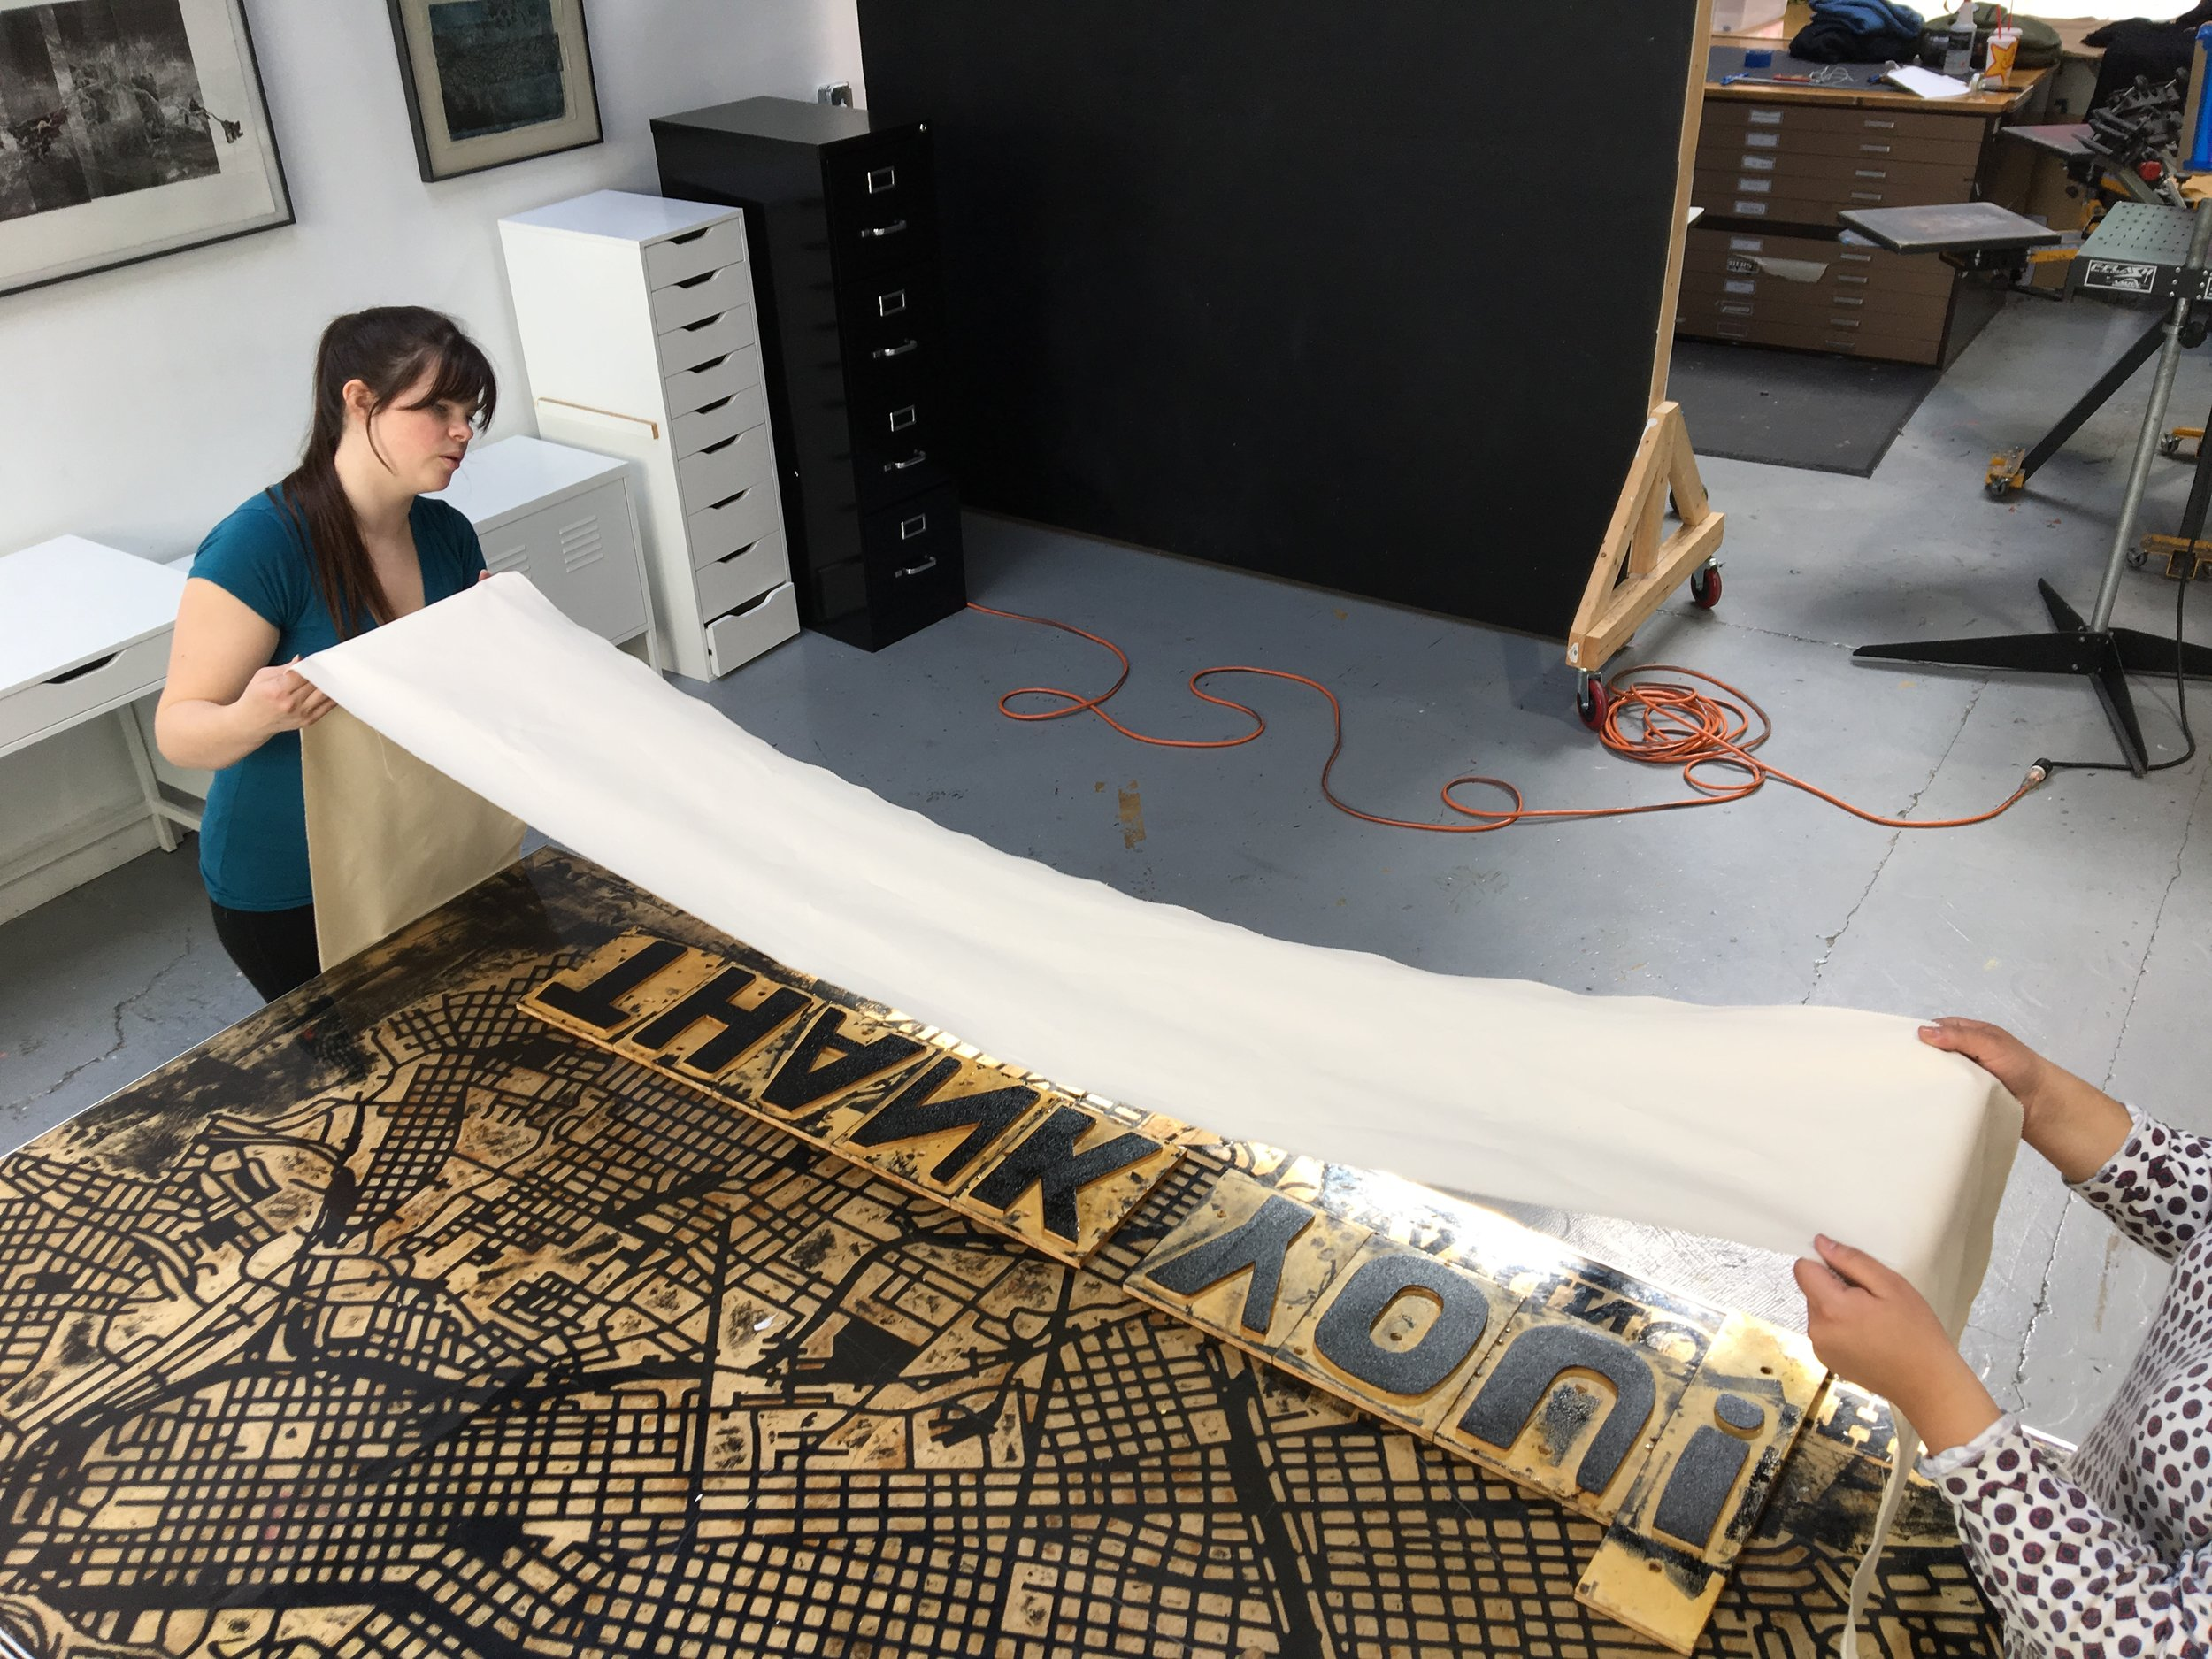 RELIF PRINTING GIANT WOOD TYPE BANNERS!